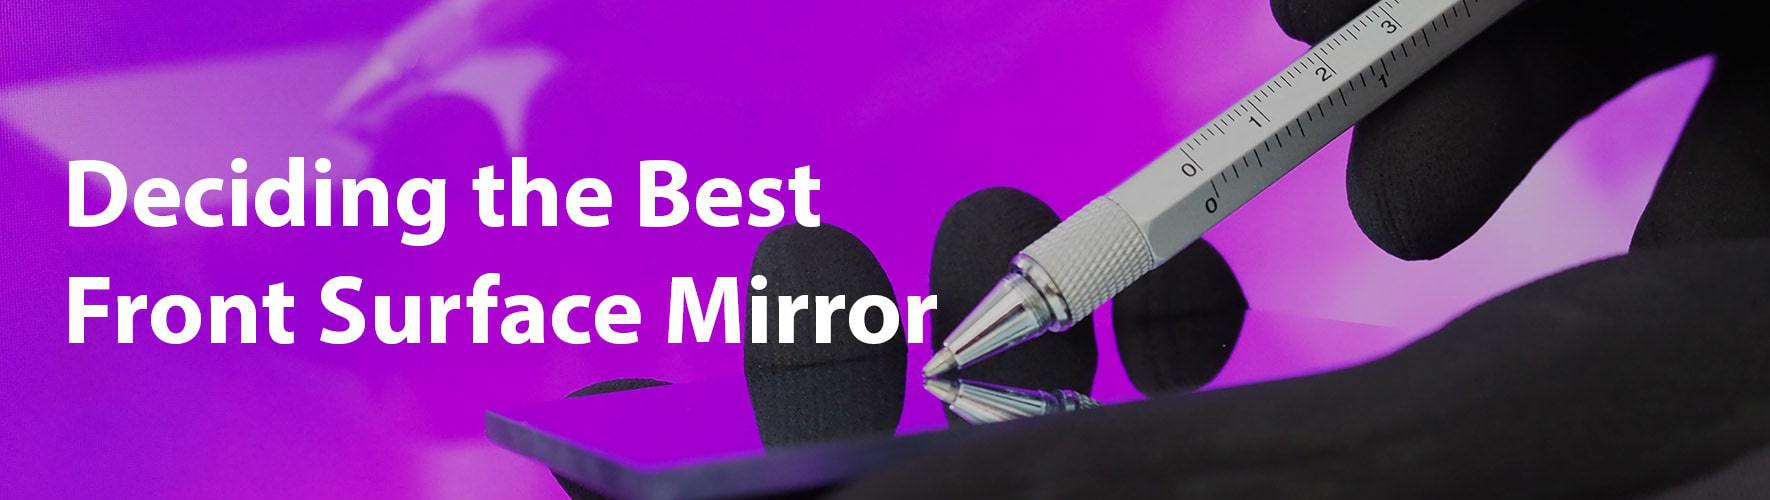 Deciding The Best Front Surface Mirror